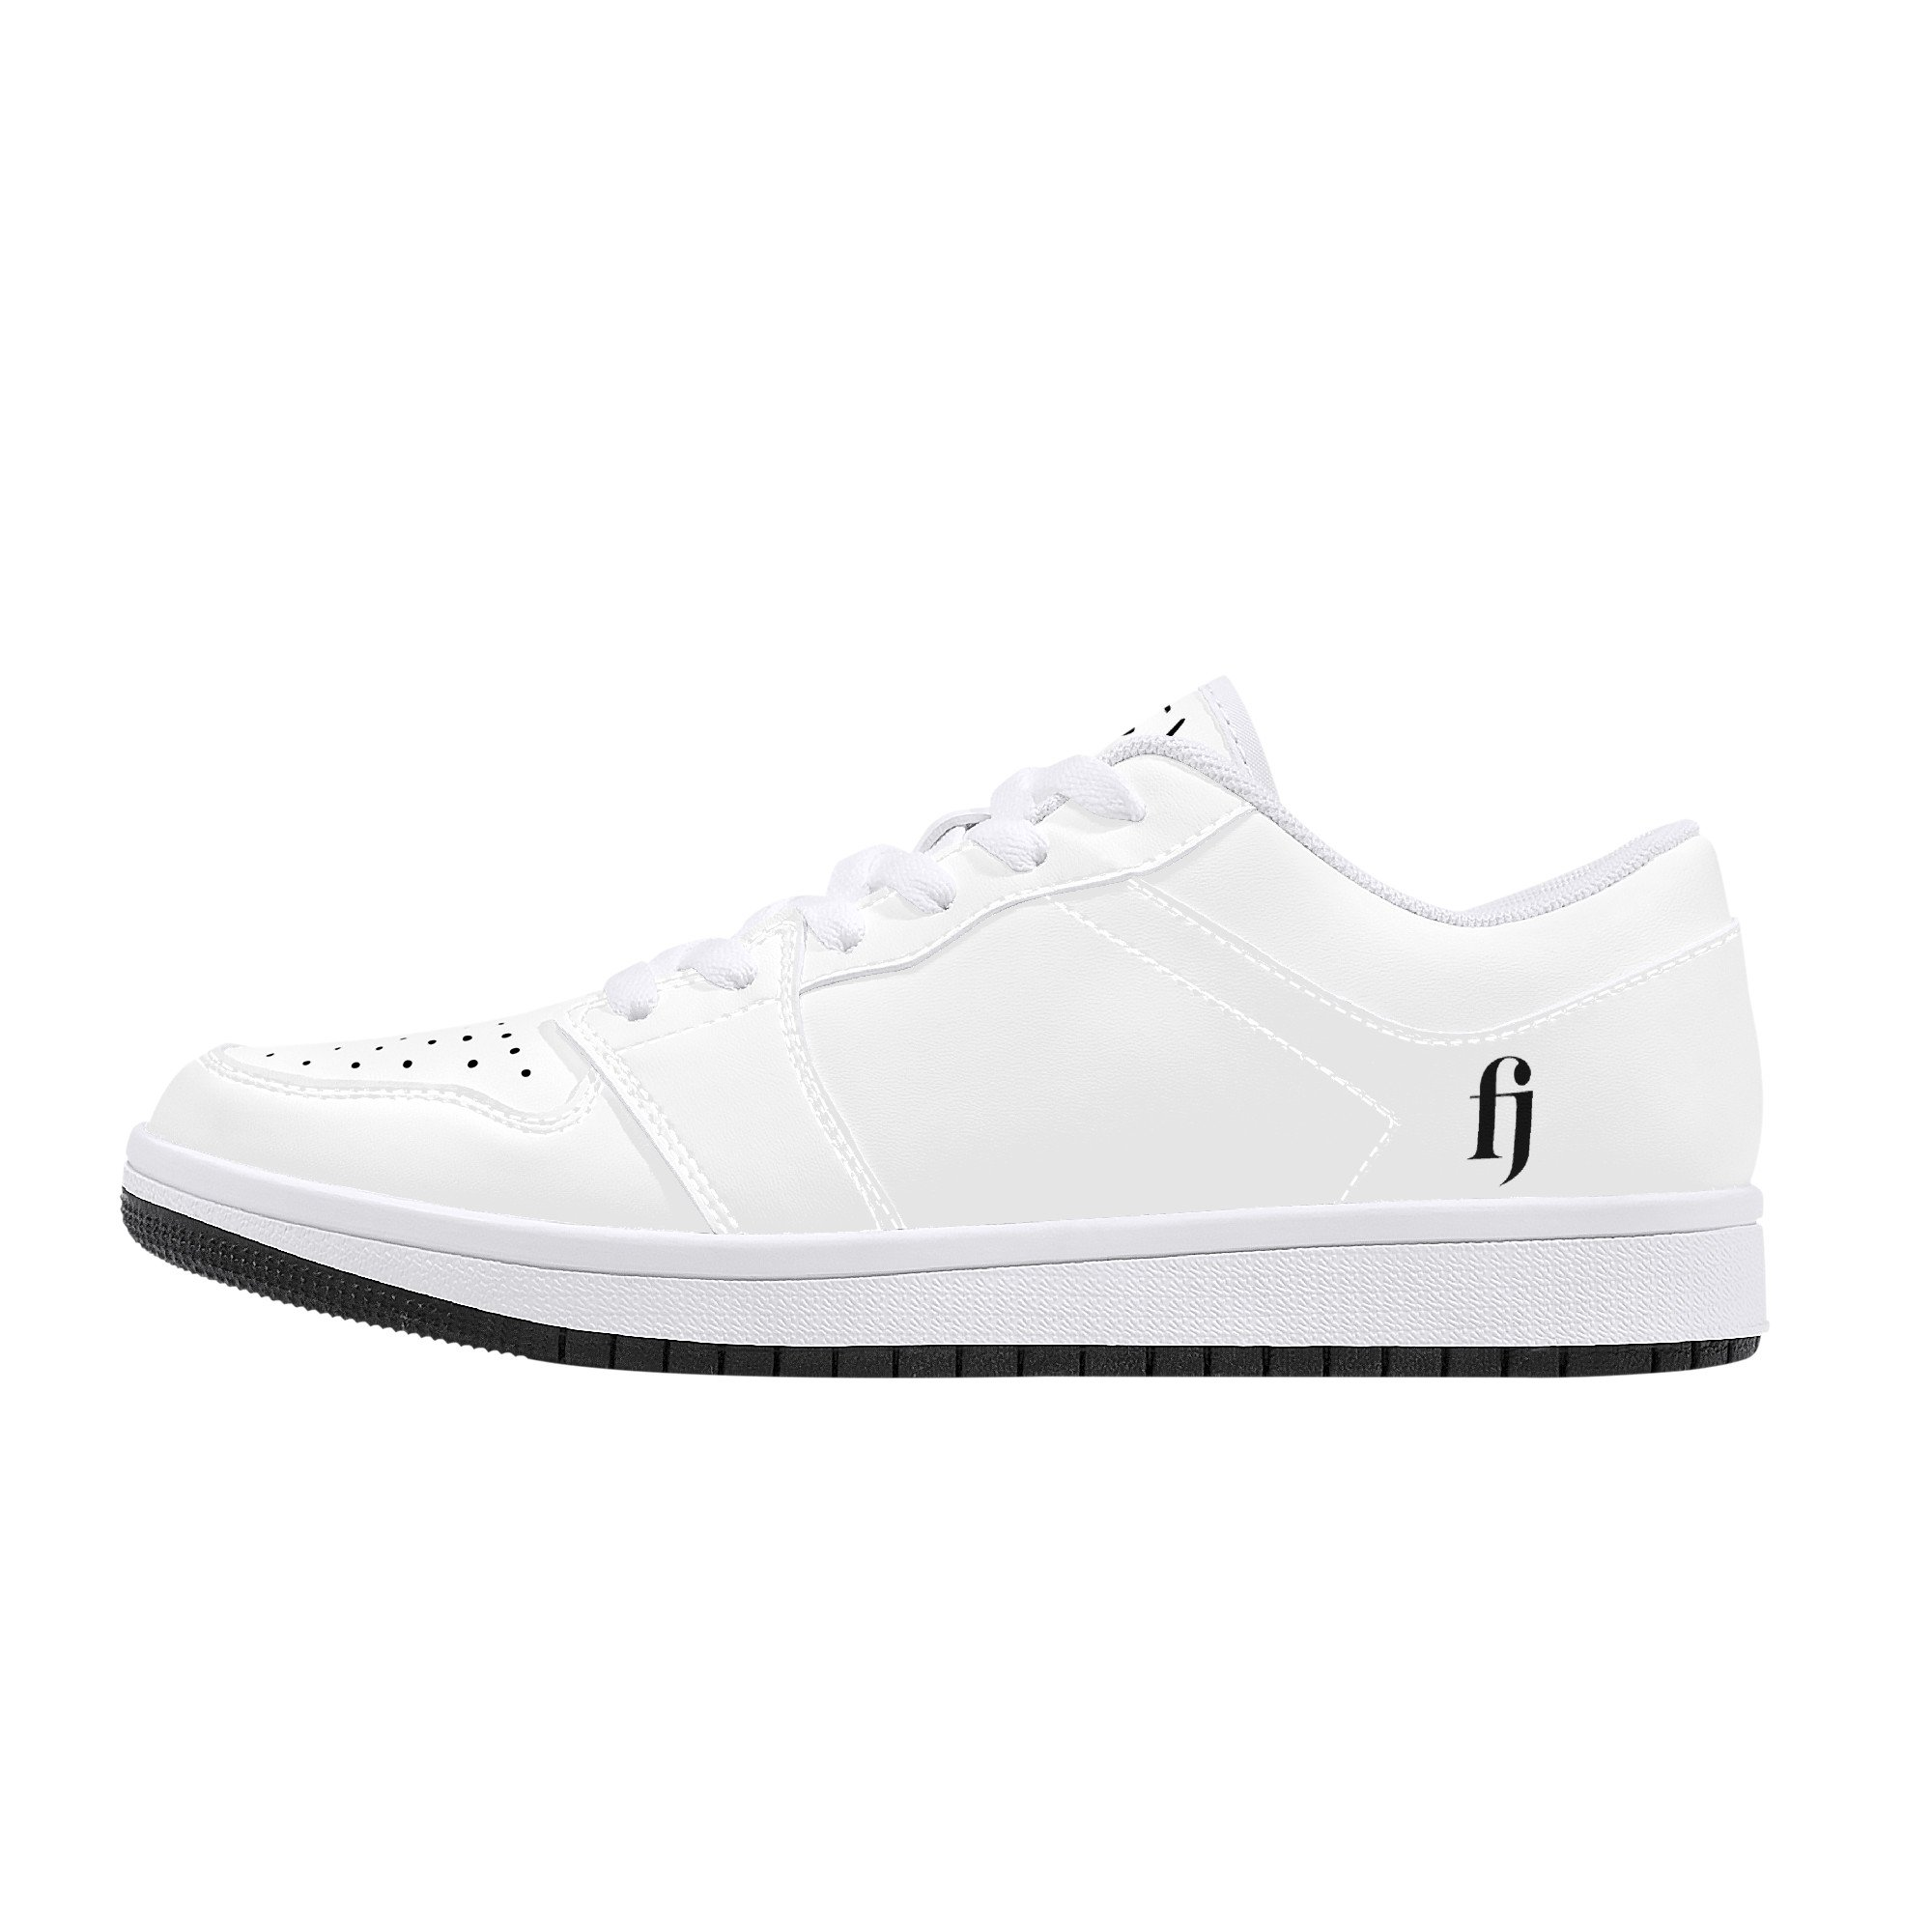 Fred Jo All White Low-Top Leather Sneakers - Fred jo Clothing